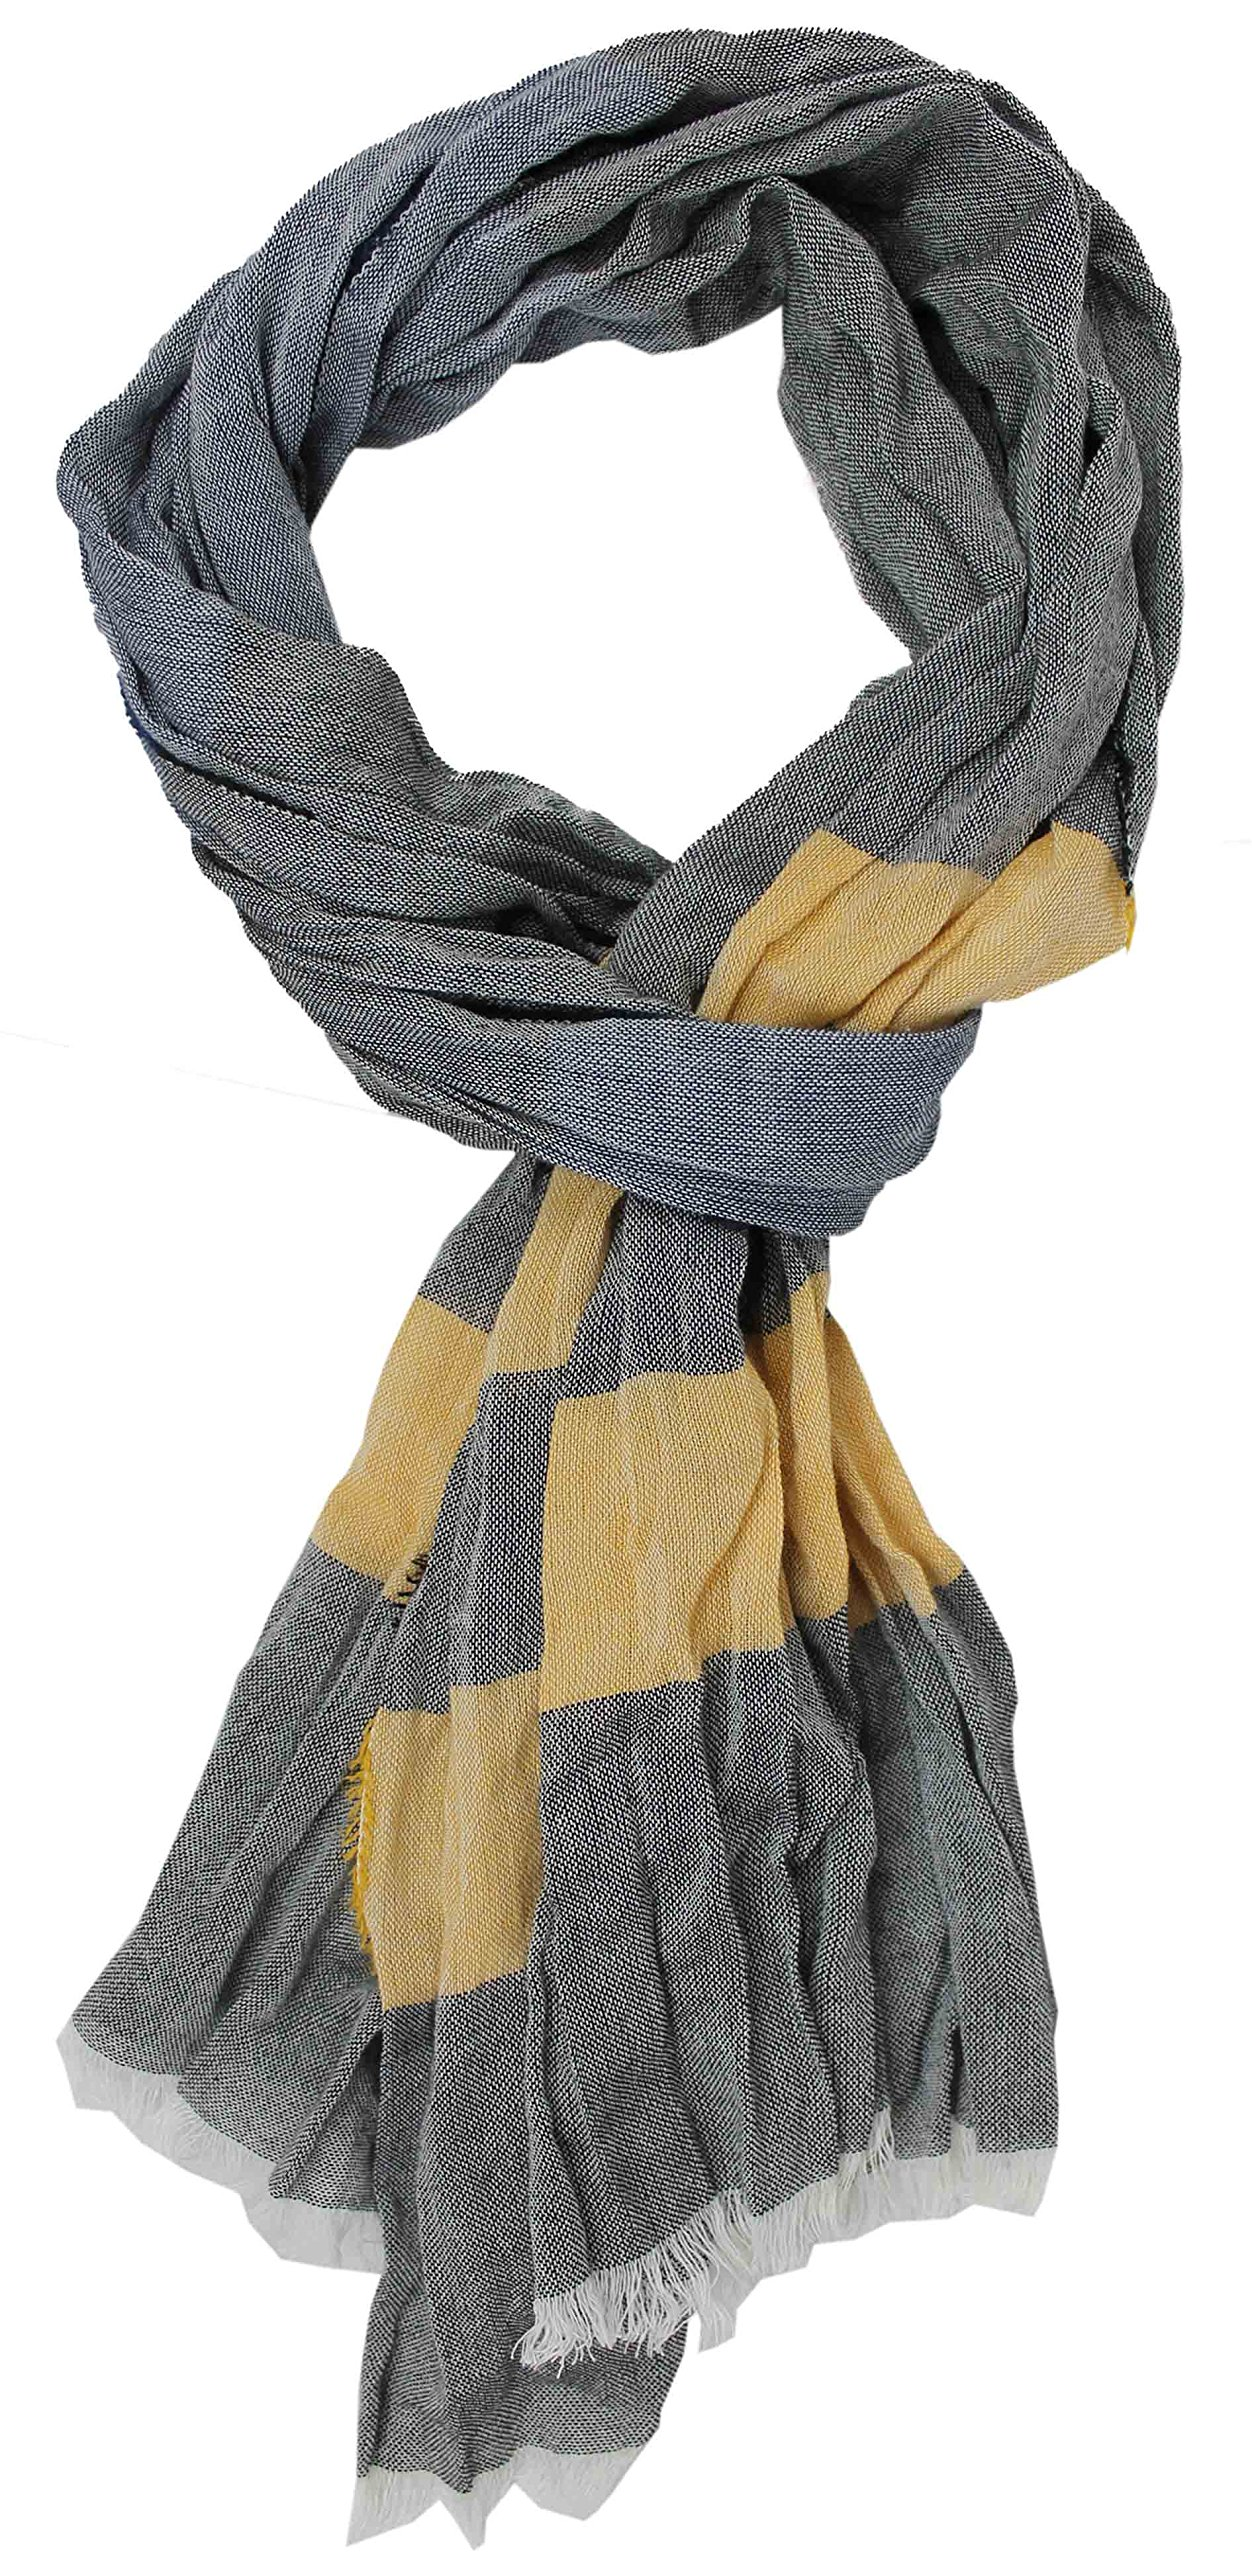 Cotton scarf Ladies scarf Summer scarf Rotfuchs stripes light multicolored 190 x 20 cm Made in Germany